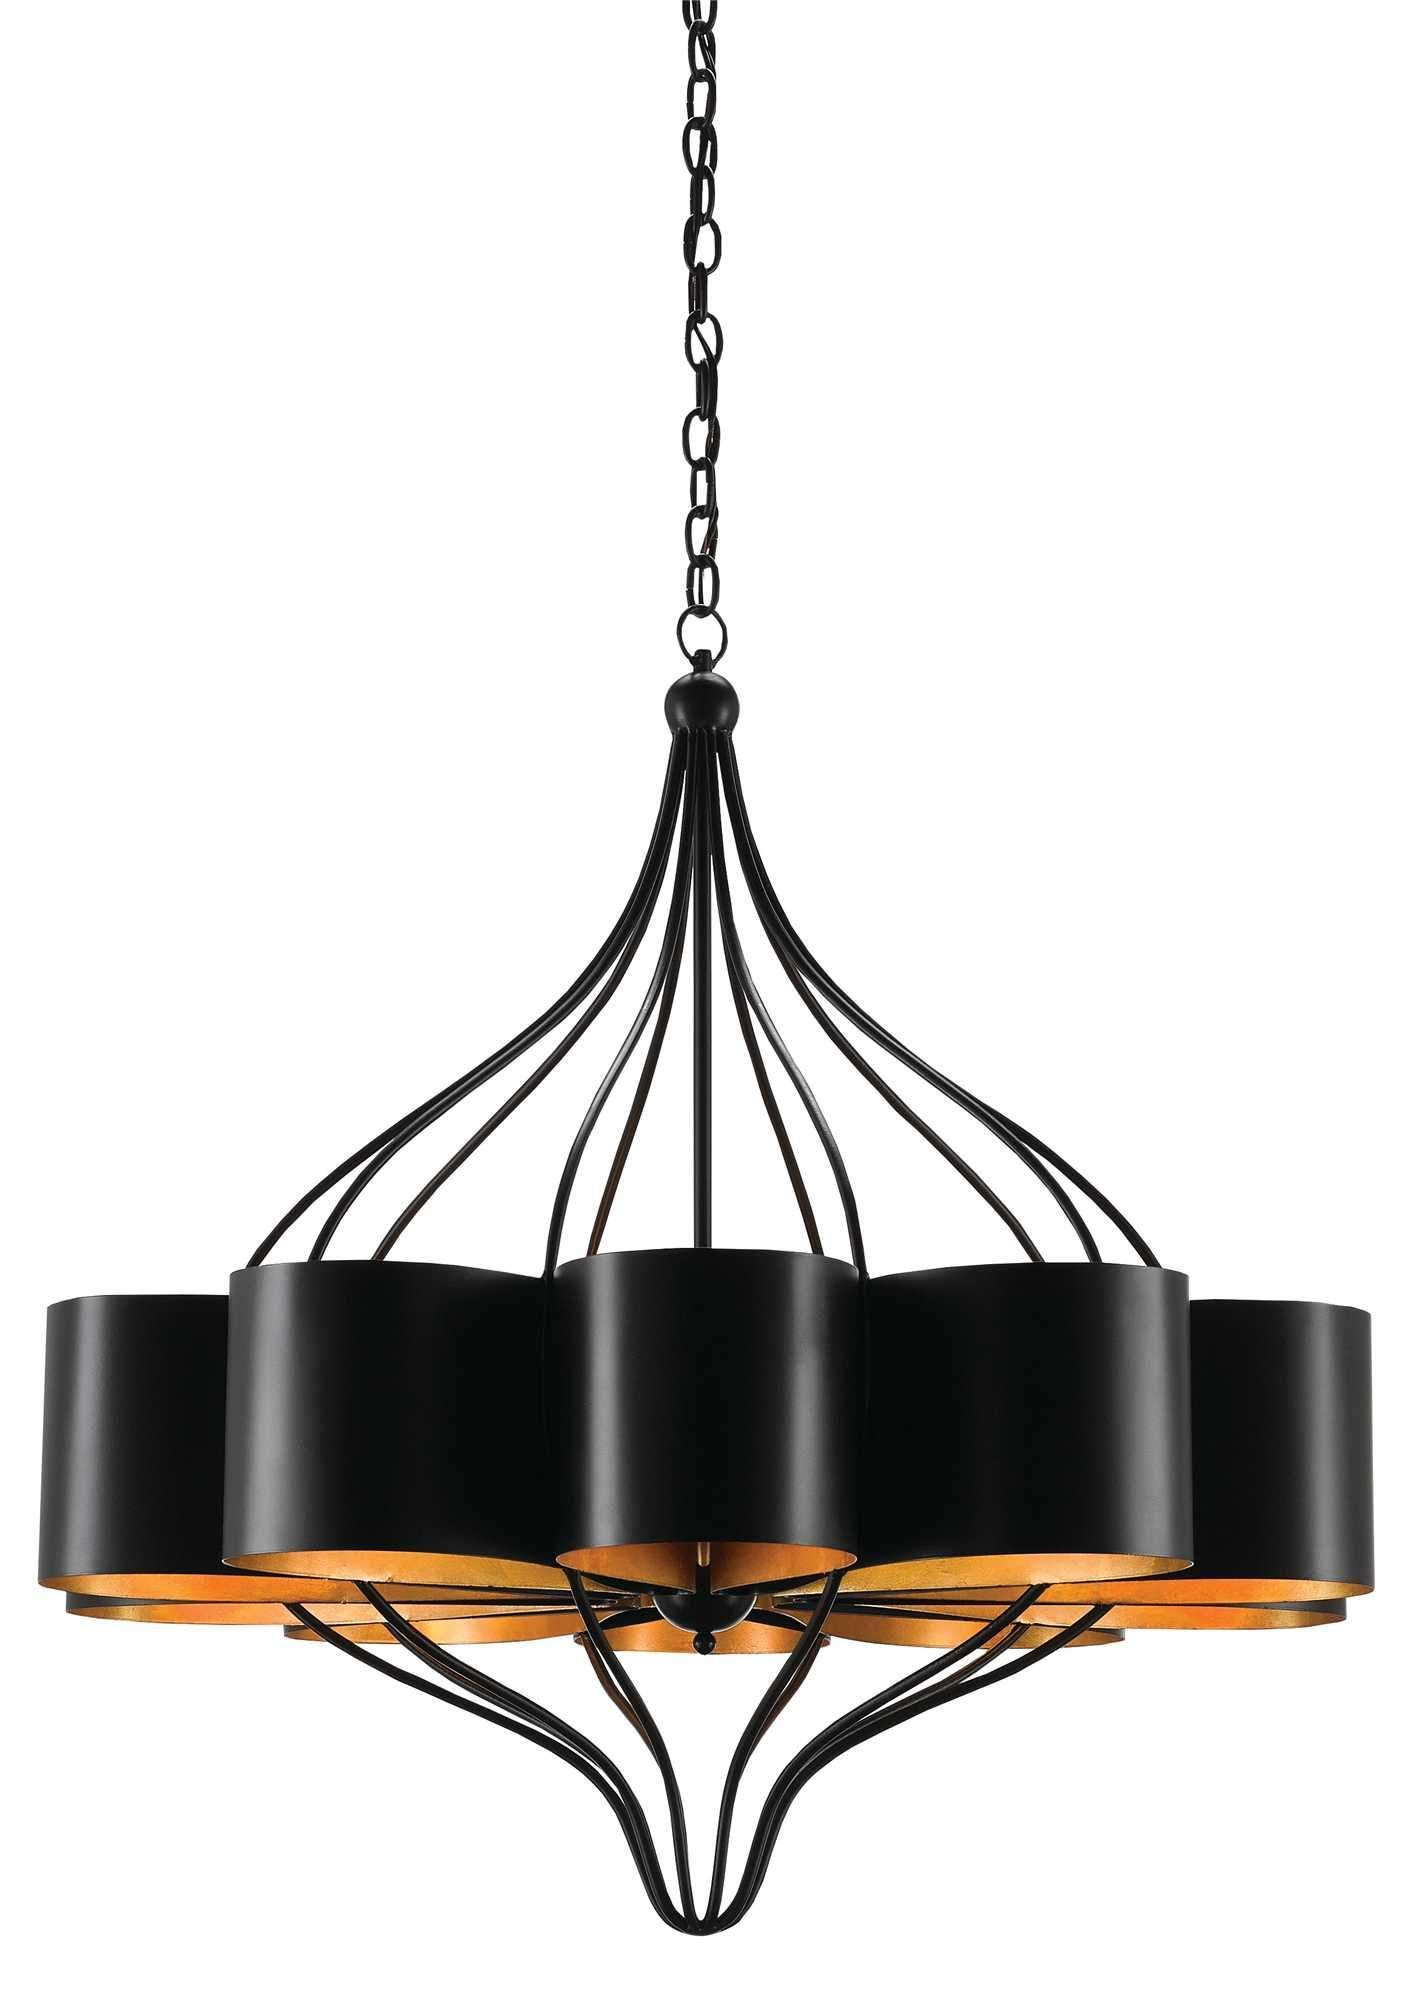 Currey And Company Marchfield Chandelier 9000 0261 Drum Shade Chandelier Chandelier Lighting Chandelier For Sale